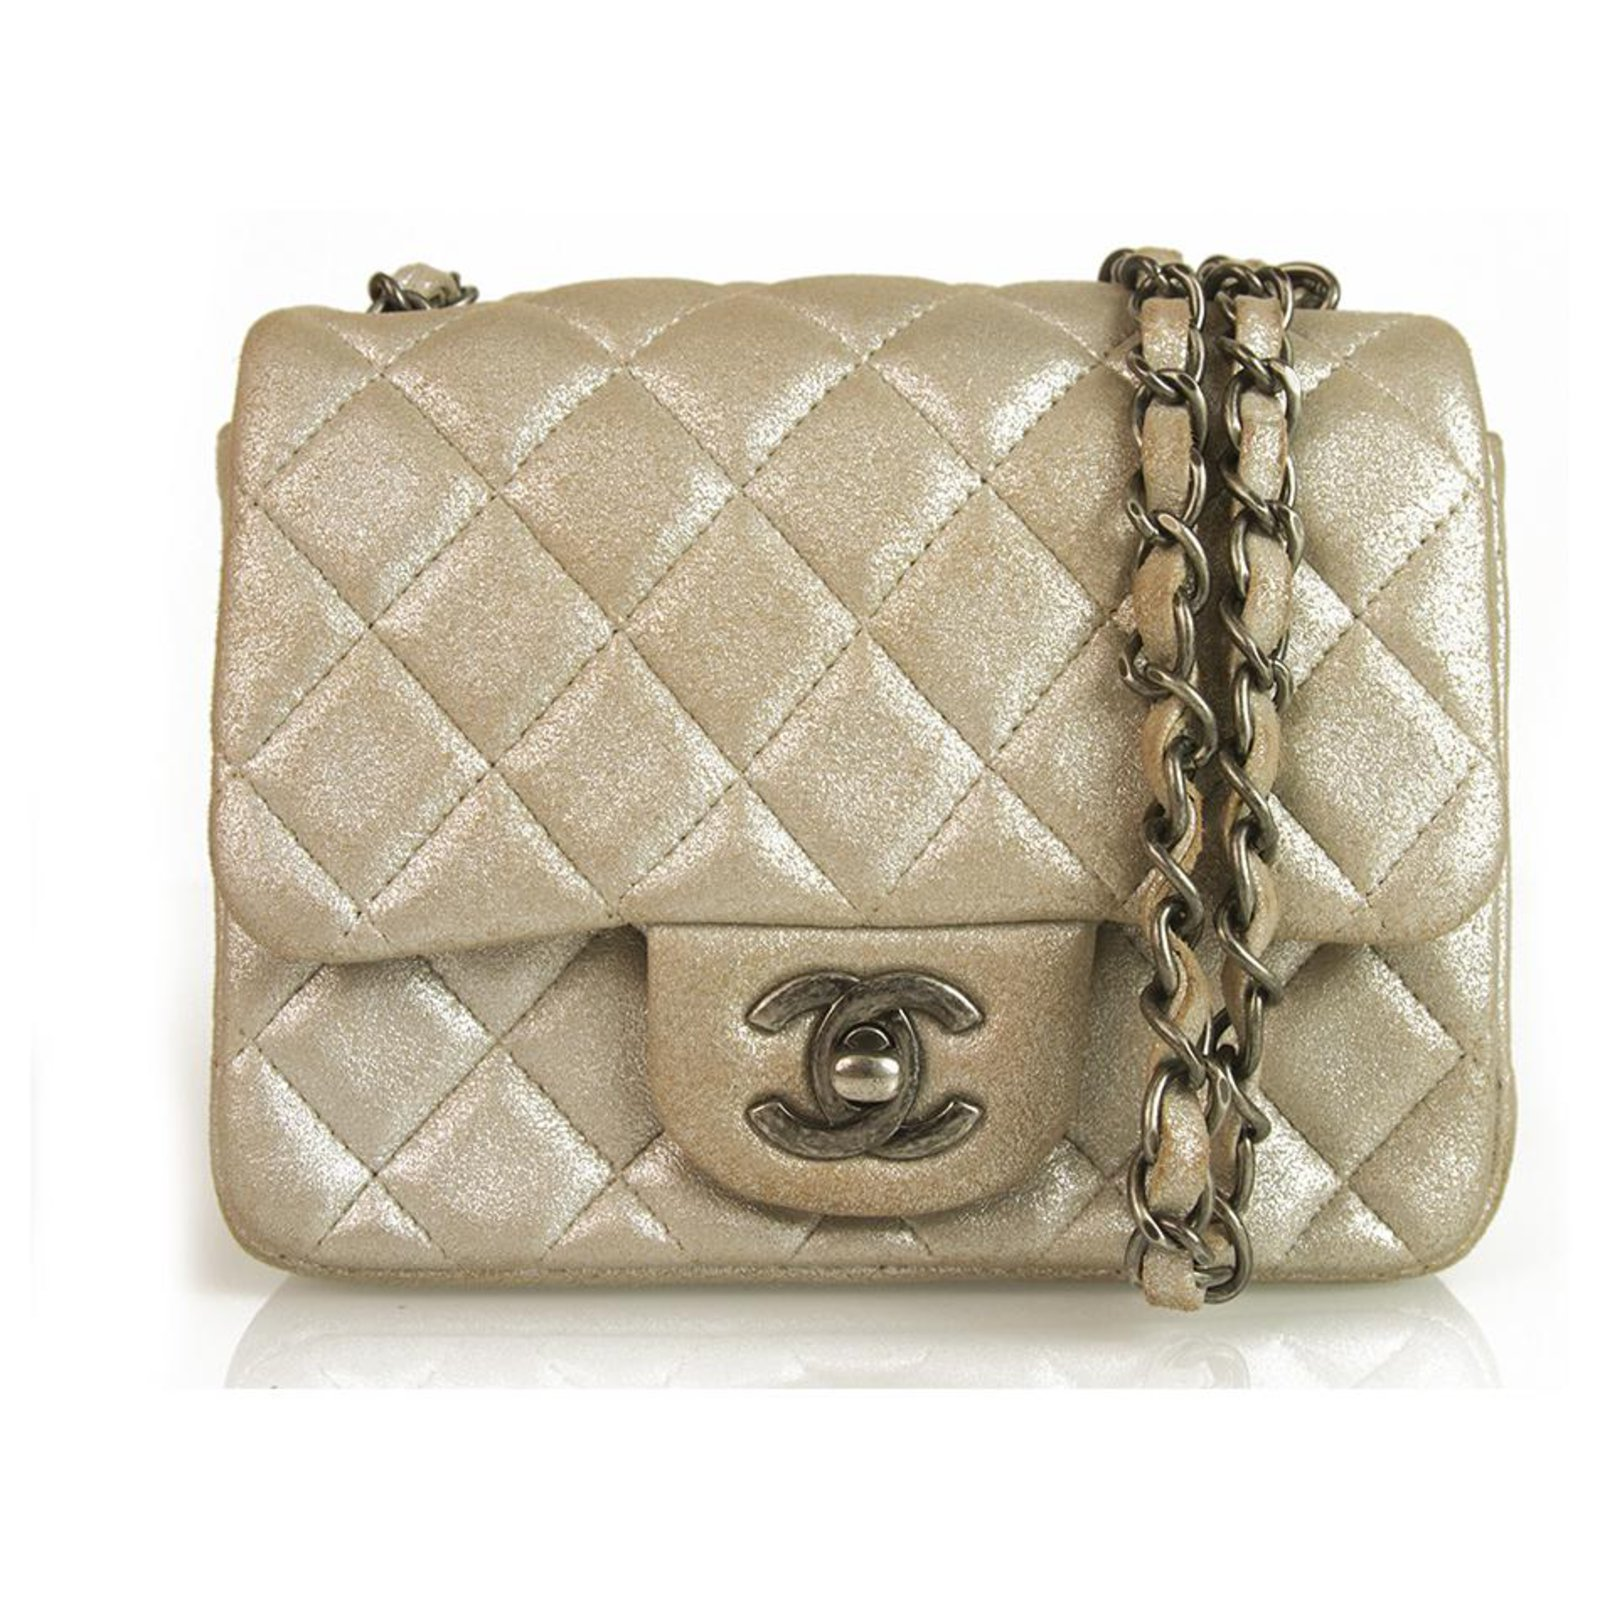 00a8165ae55e38 Chanel Chanel Silver Gold square mini 255 Lambskin Single Flap Bag gunmetal  hardware Handbags Leather Silvery